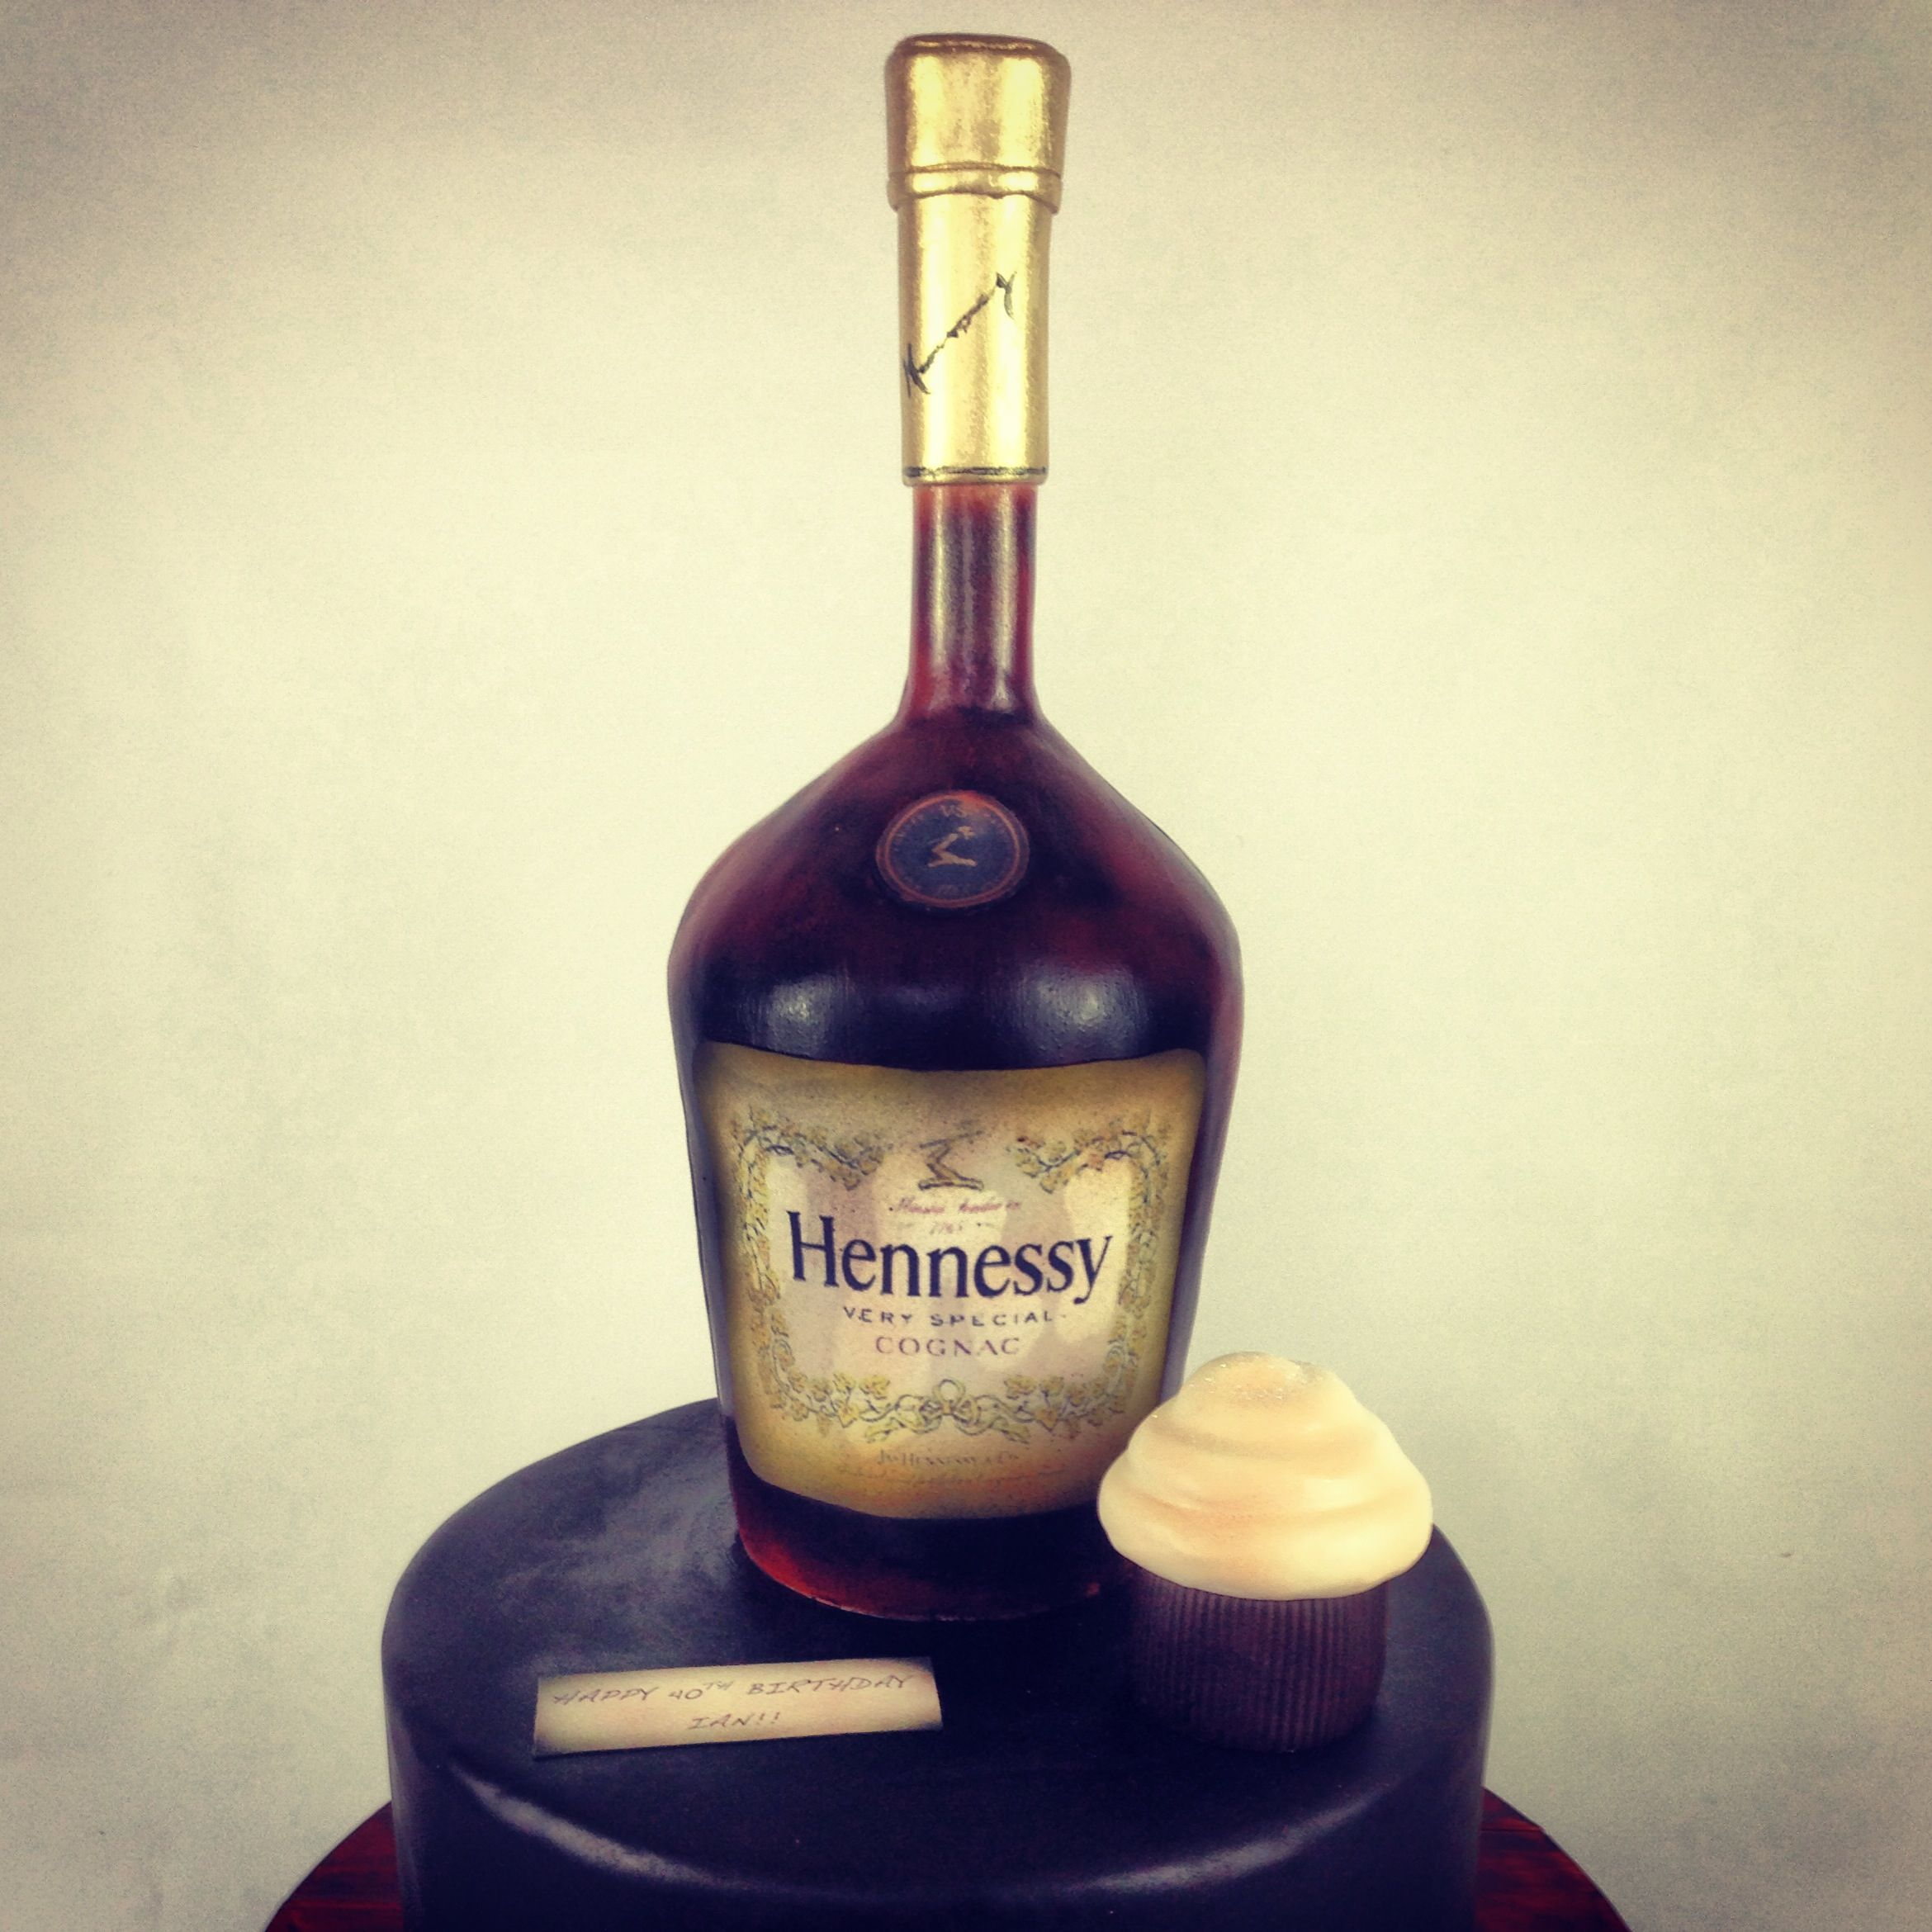 Decorated Hennessy Bottle Hennessy Bottle Sculpted Cakelaury Saldana At There Should